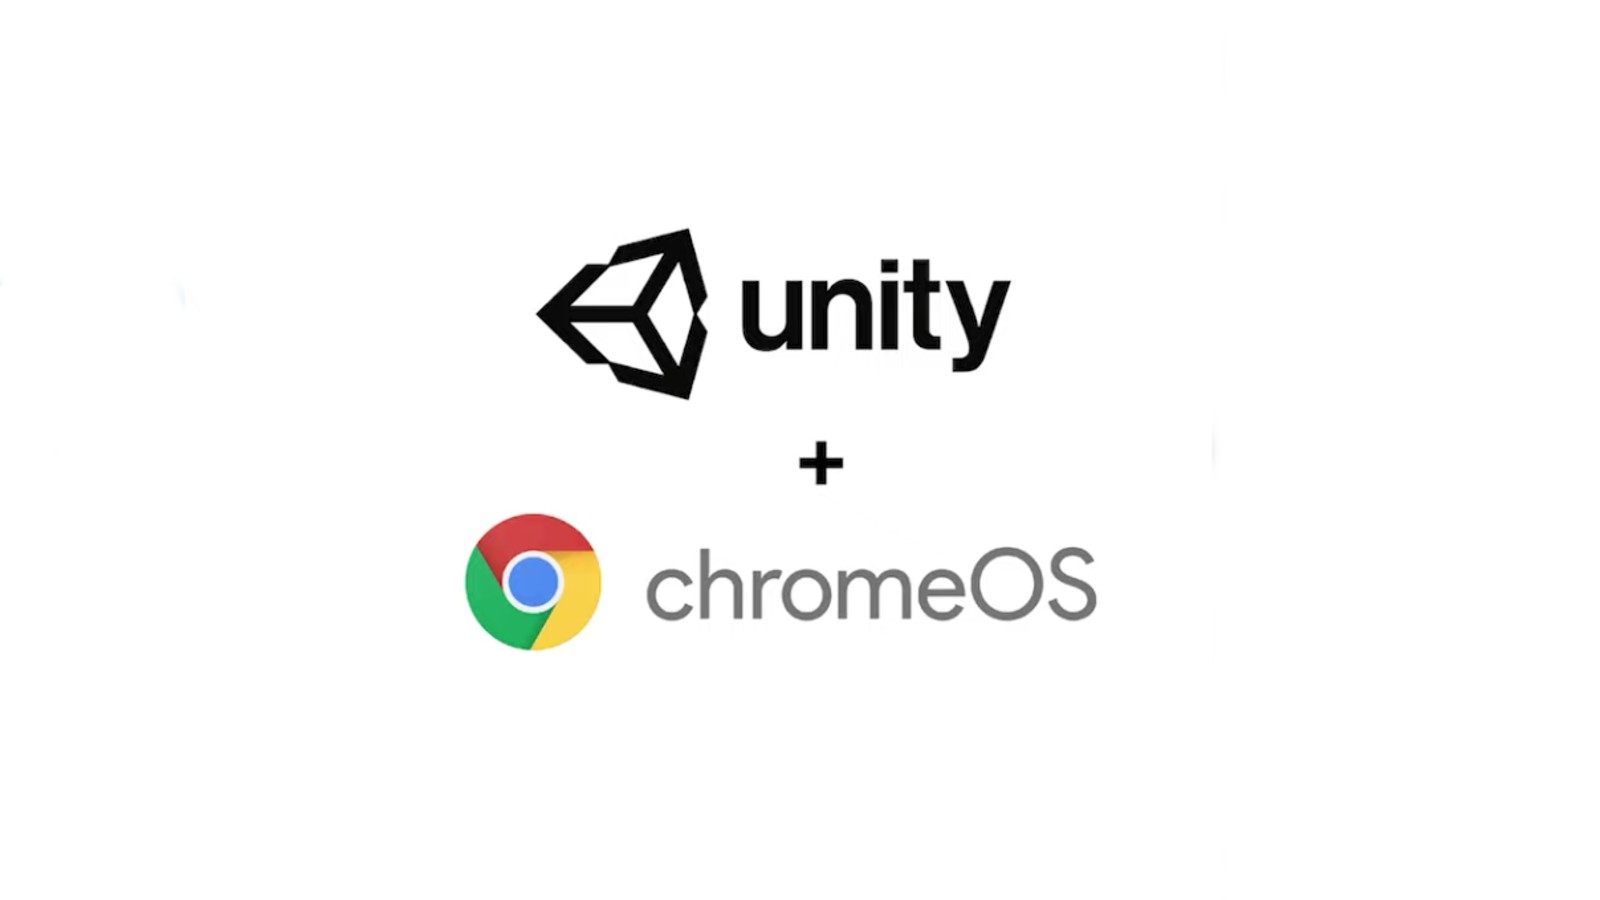 Games made with Unity can now be directly built for Chromebooks